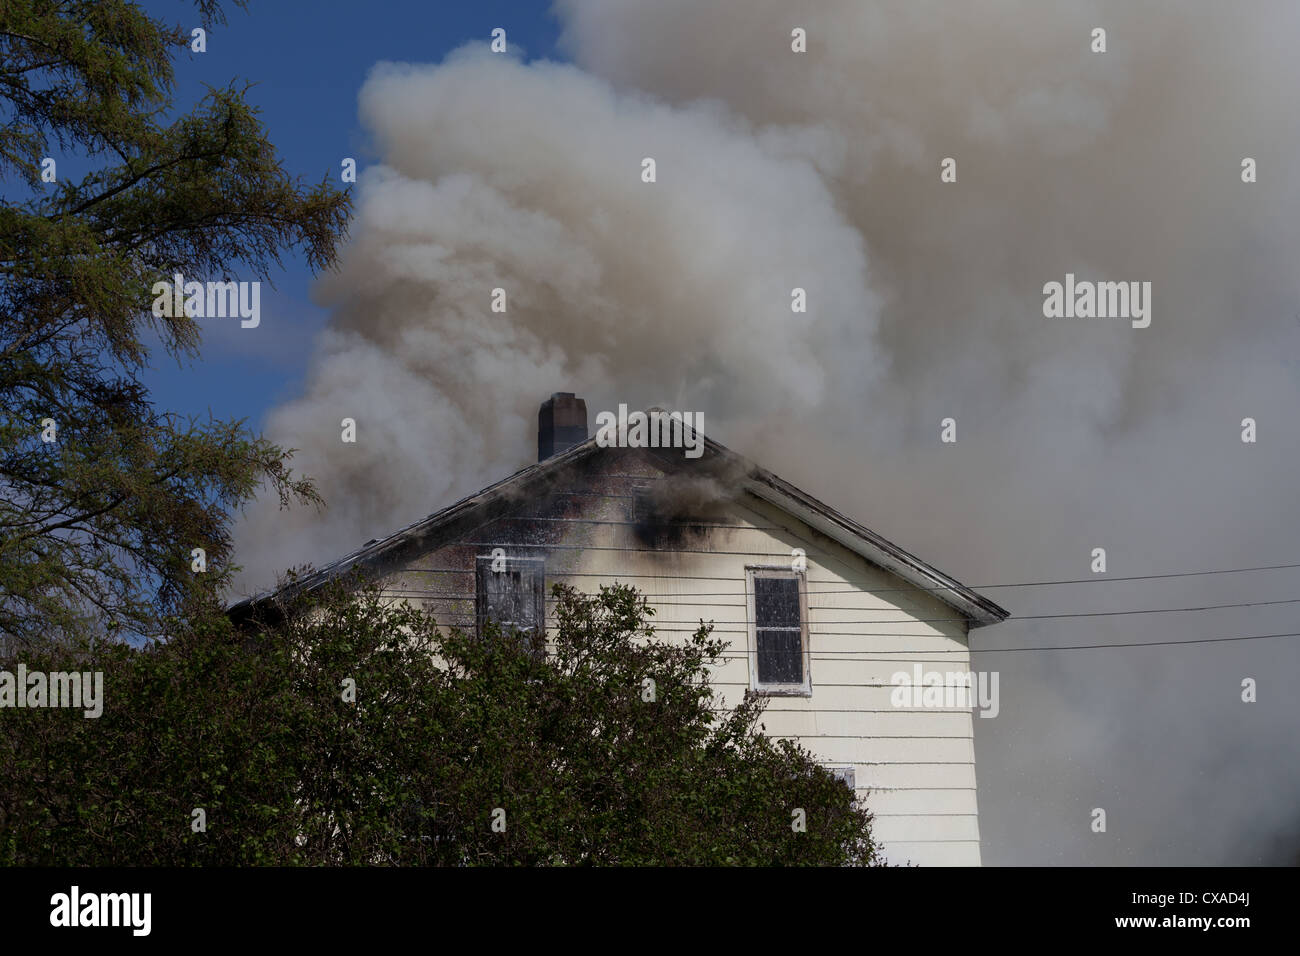 House fire - Stock Image